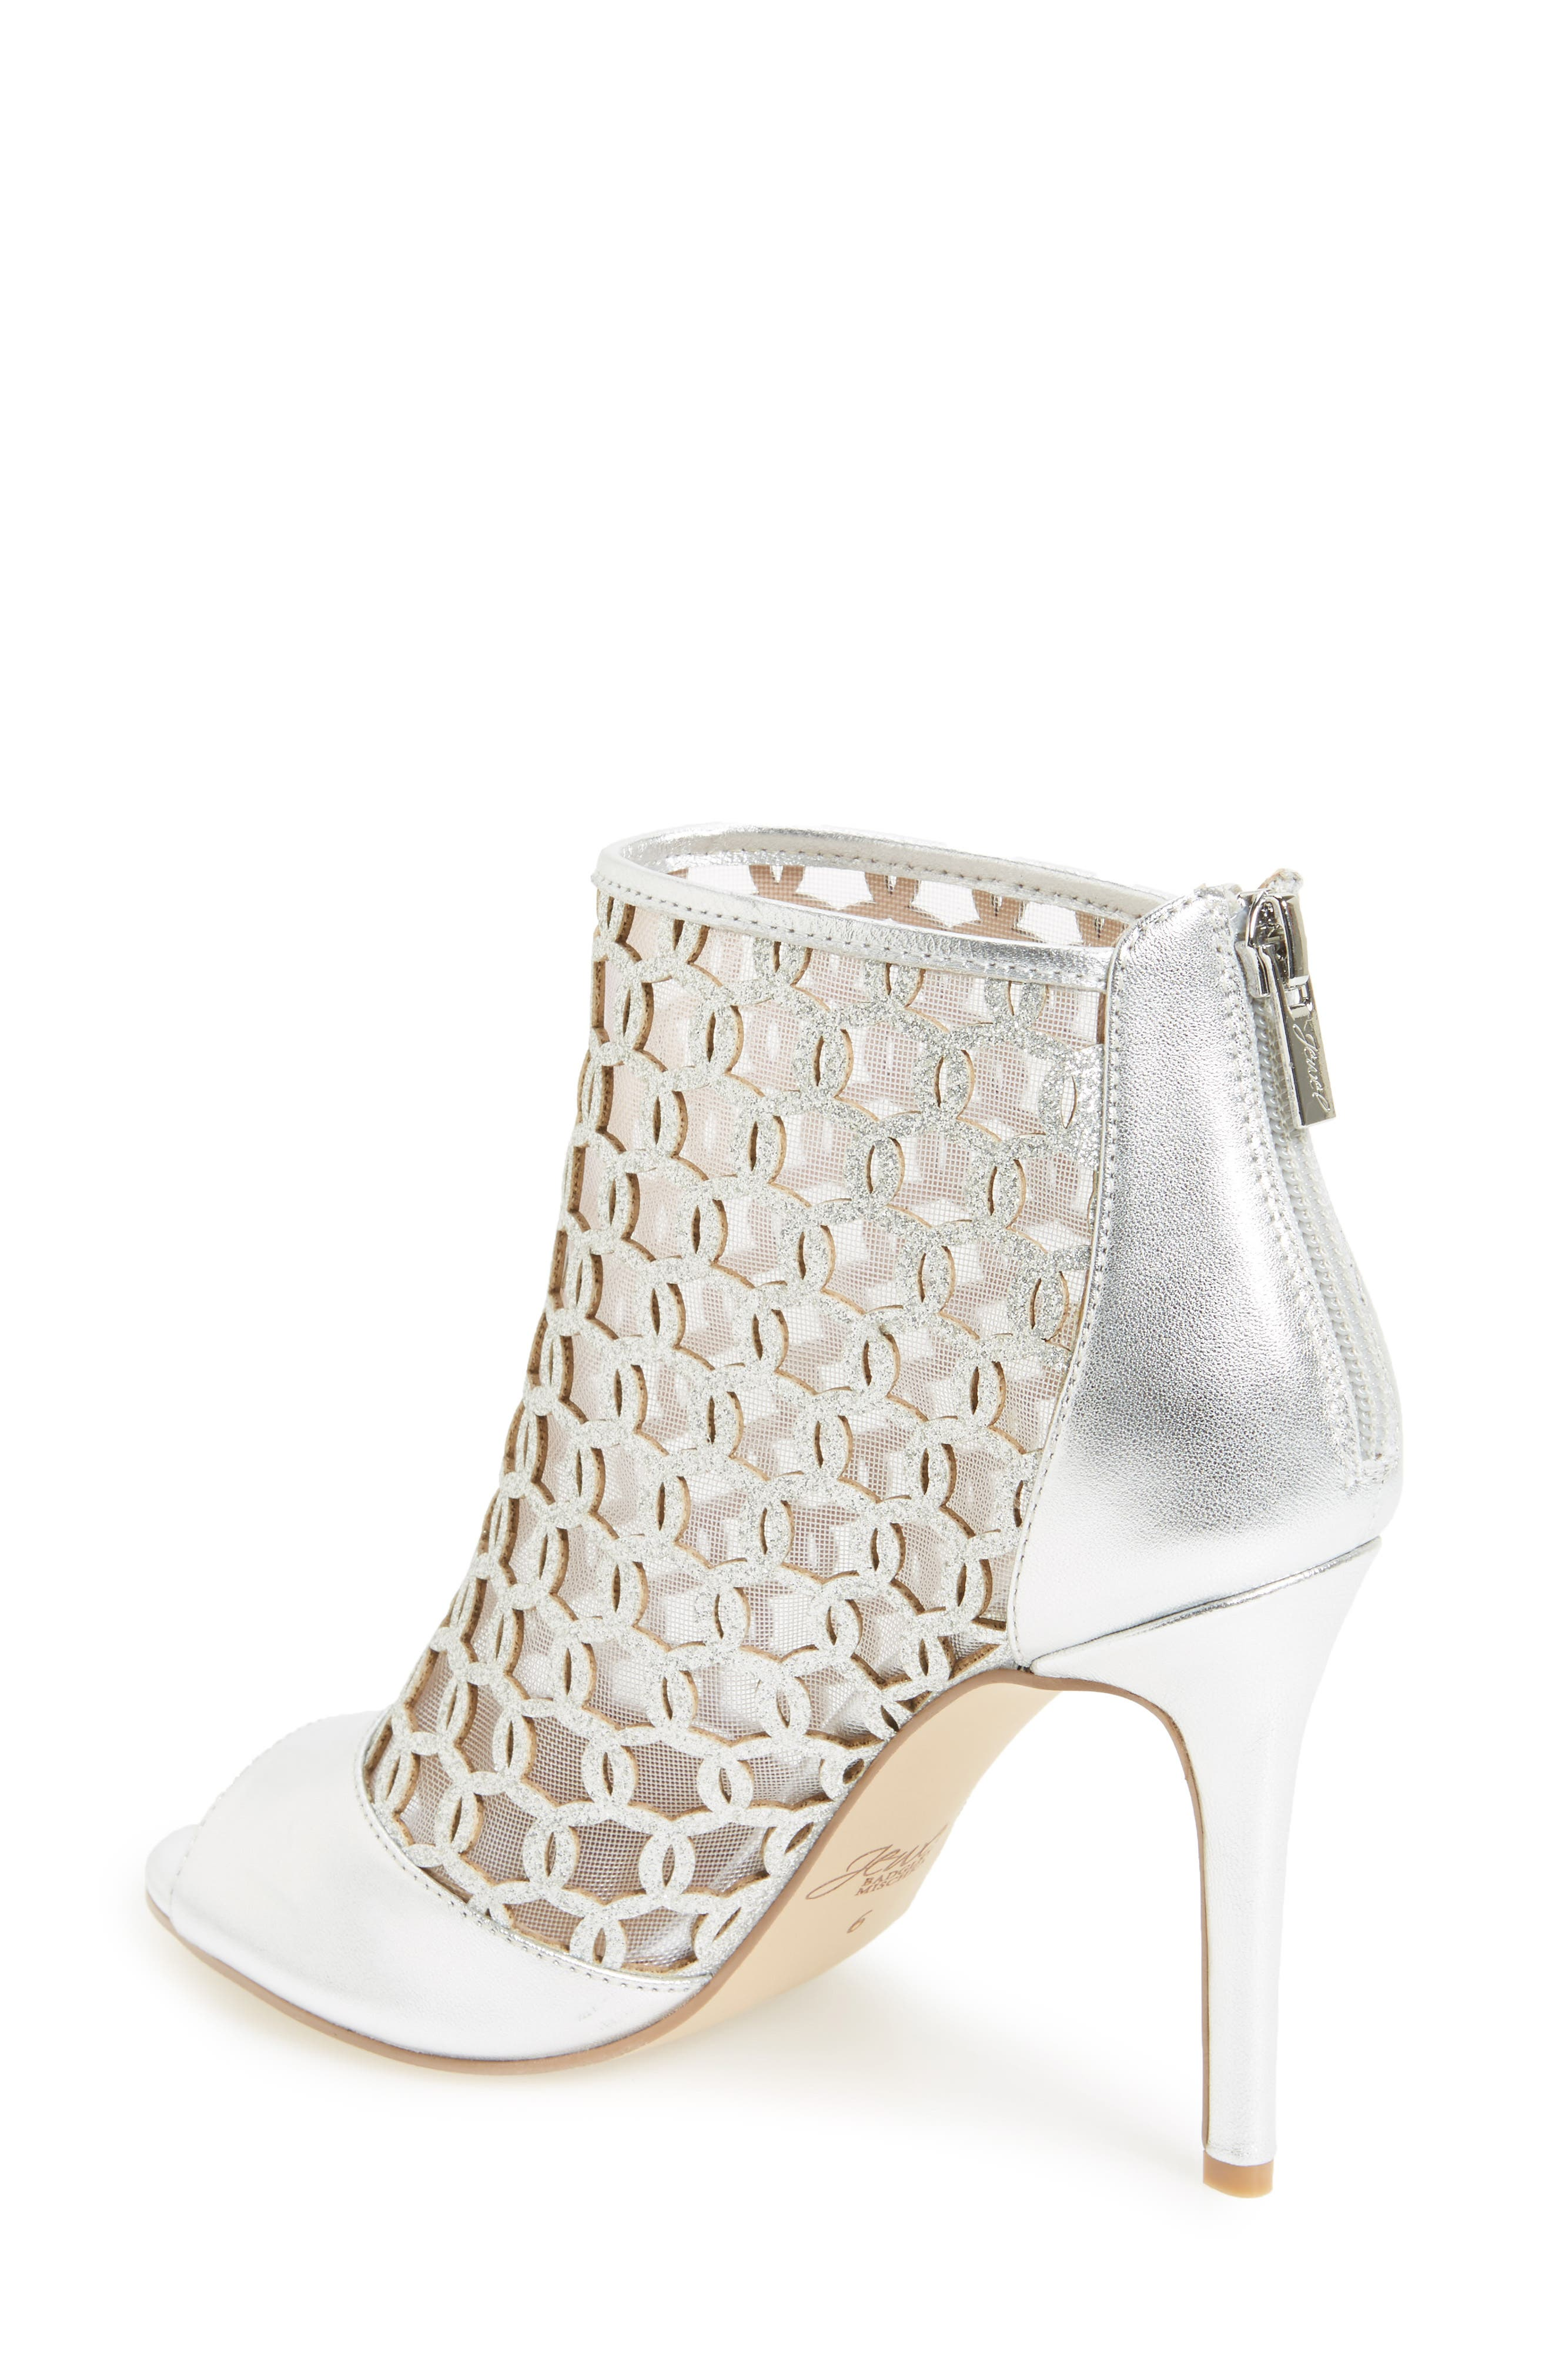 Holt II Glittery Cage Sandal,                             Alternate thumbnail 2, color,                             Silver Satin